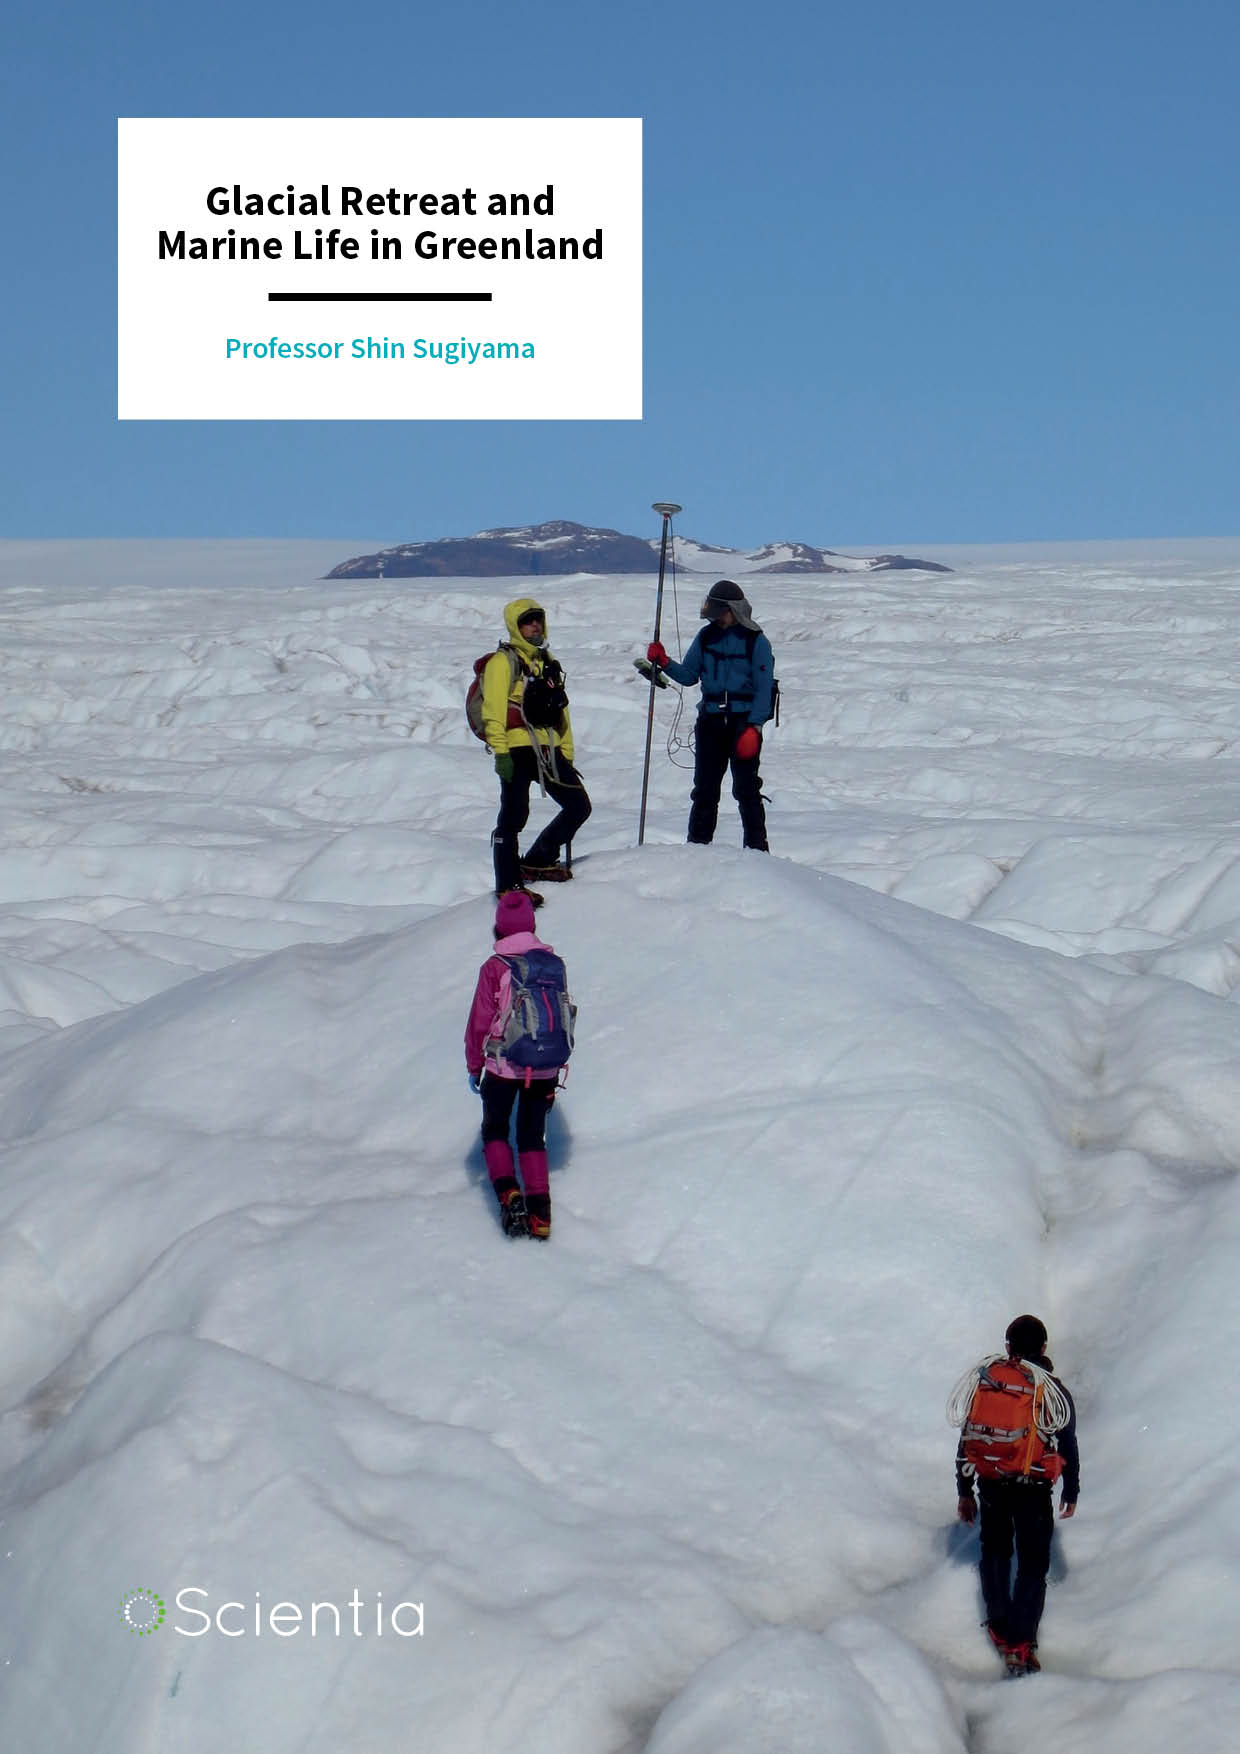 Dr Shin Sugiyama – Glacial Retreat and Marine Life in Greenland